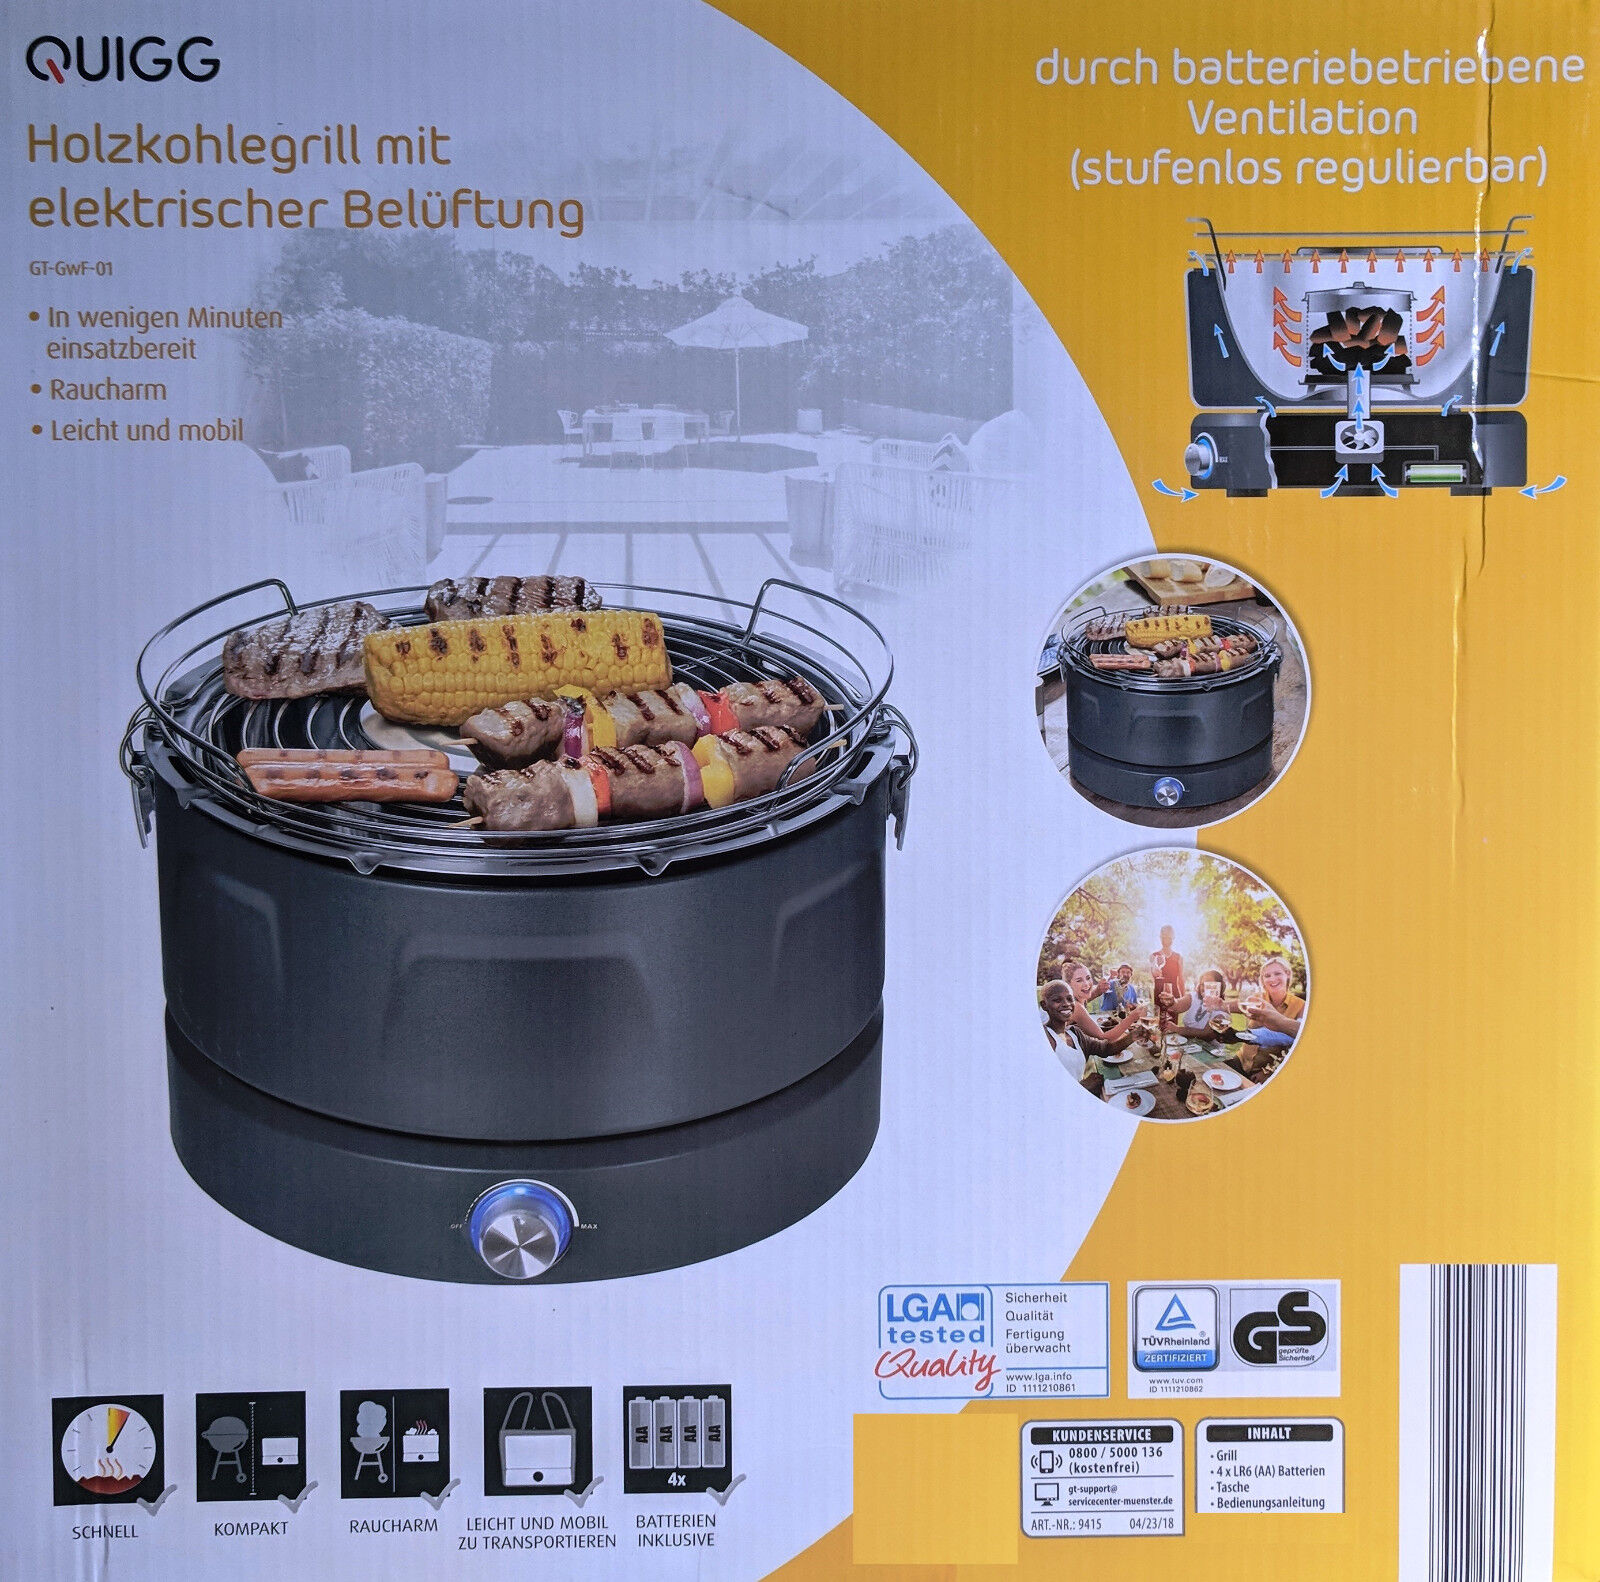 Quigg Kugelgrill Fast and Easy Grill Elektrische Belüftung Anthrazit